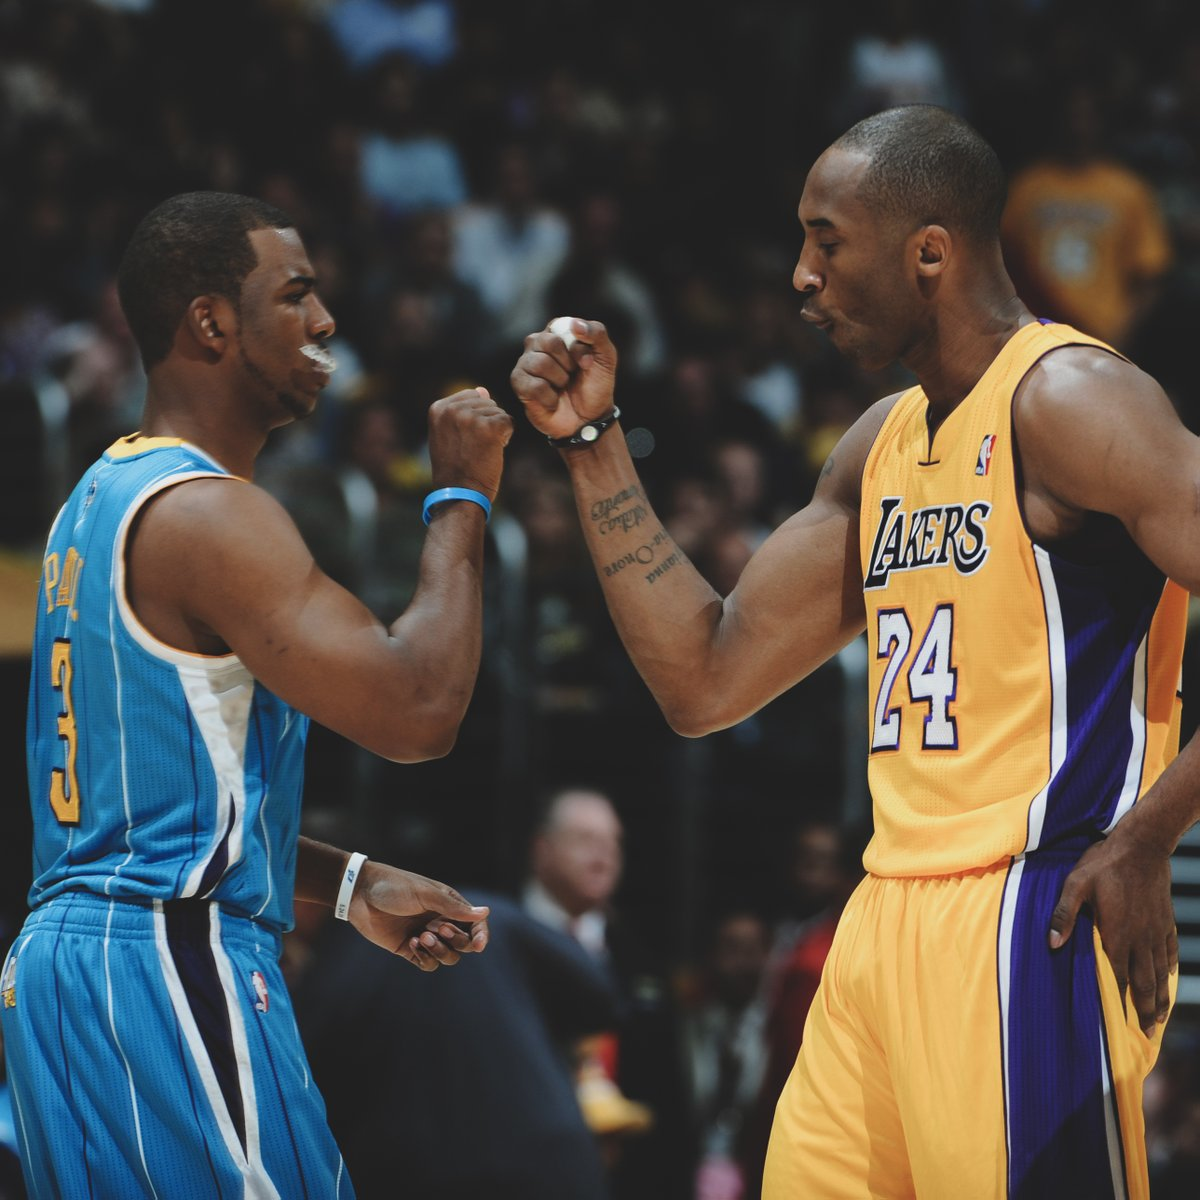 8 years ago today, the Lakers trade for CP3 was vetoed. One of the craziest things in sports to happen this decade.